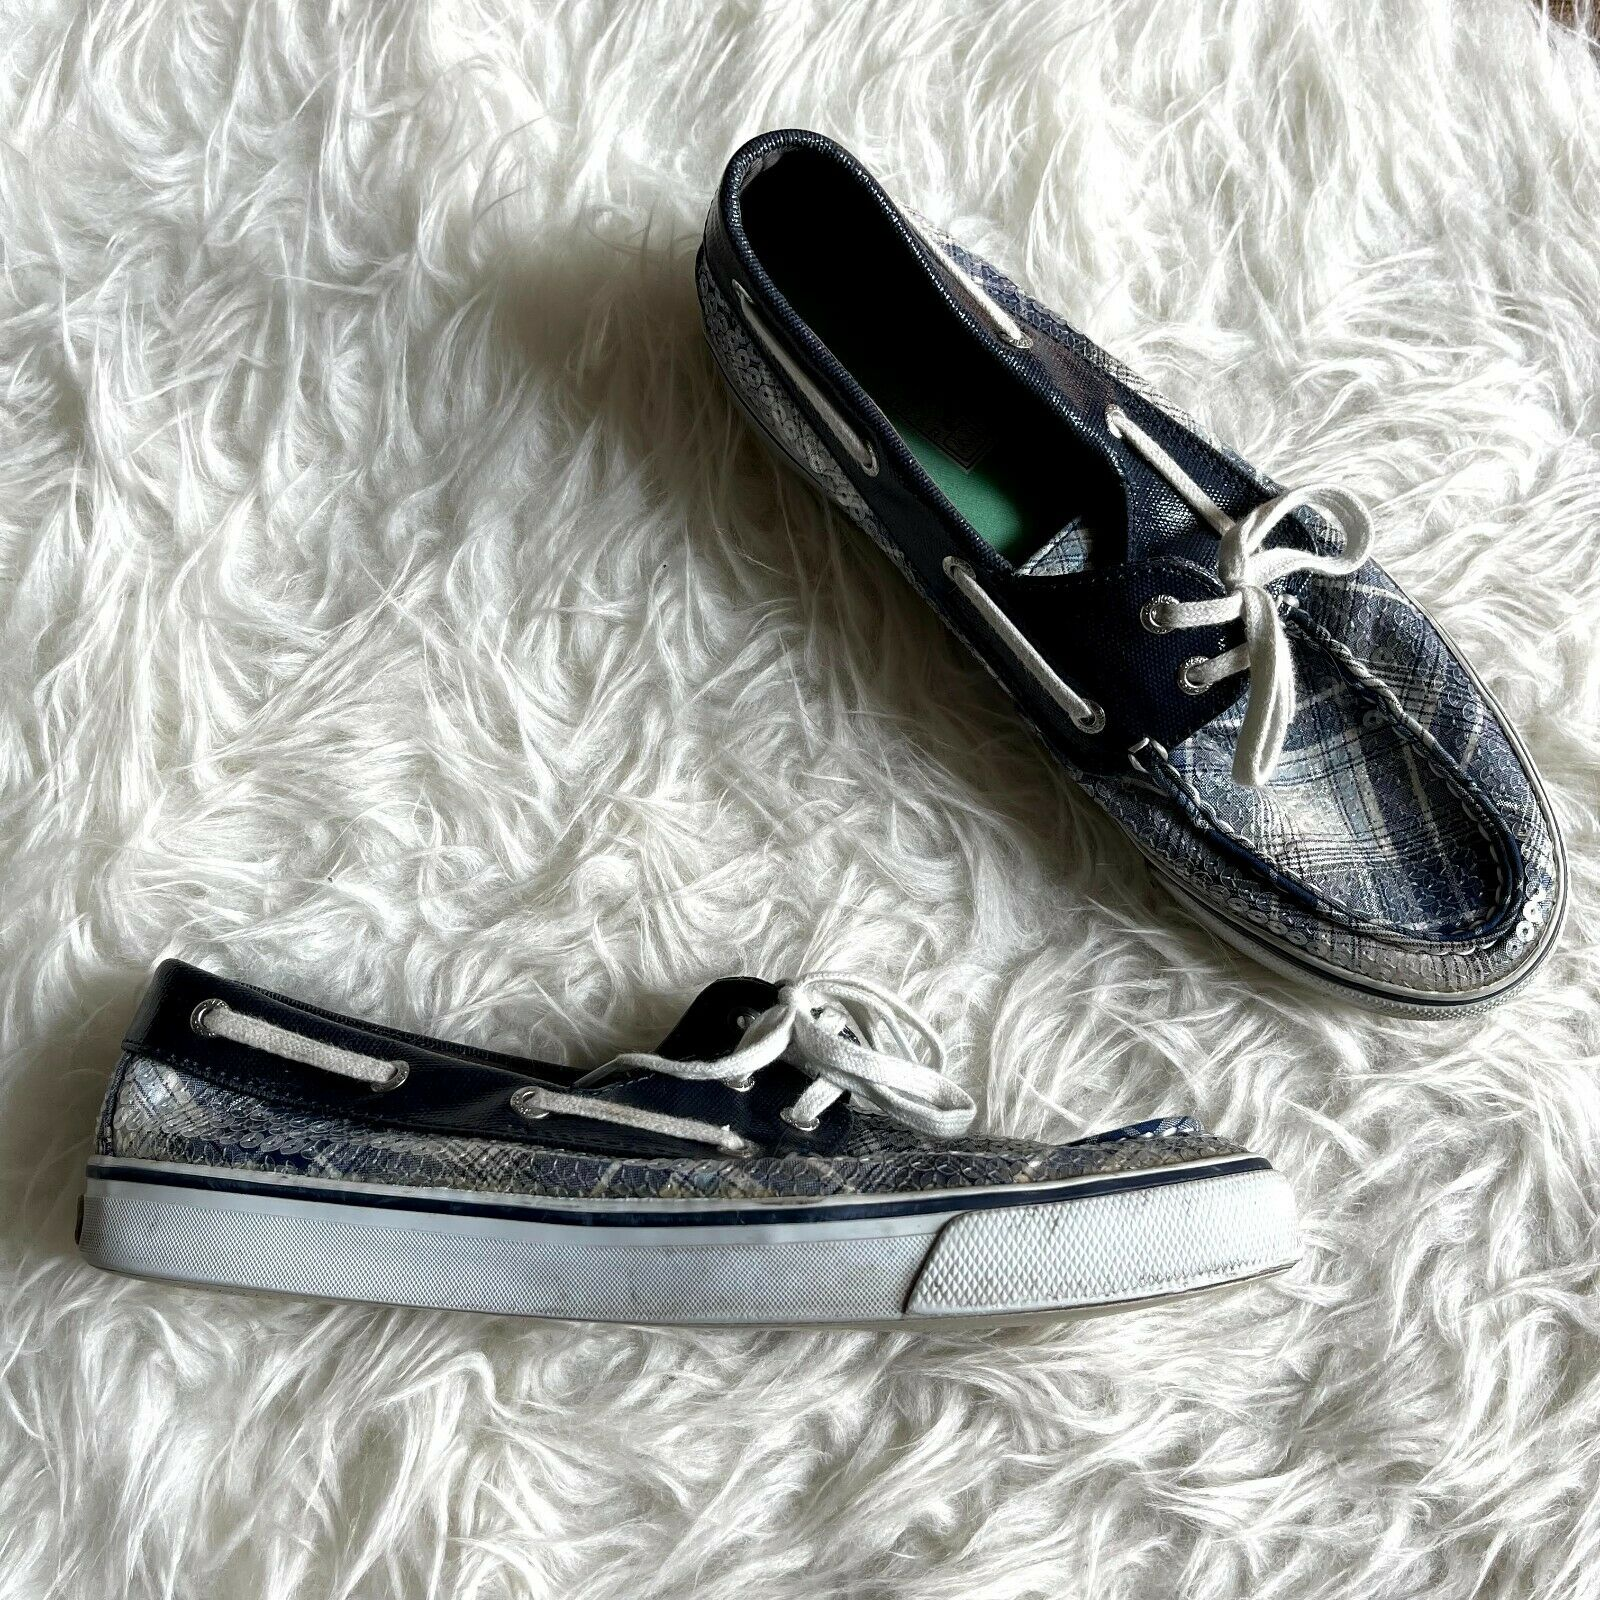 Sperry Top Sider 8.5 Blue White Plaid Sequined Boat Shoes Loafers